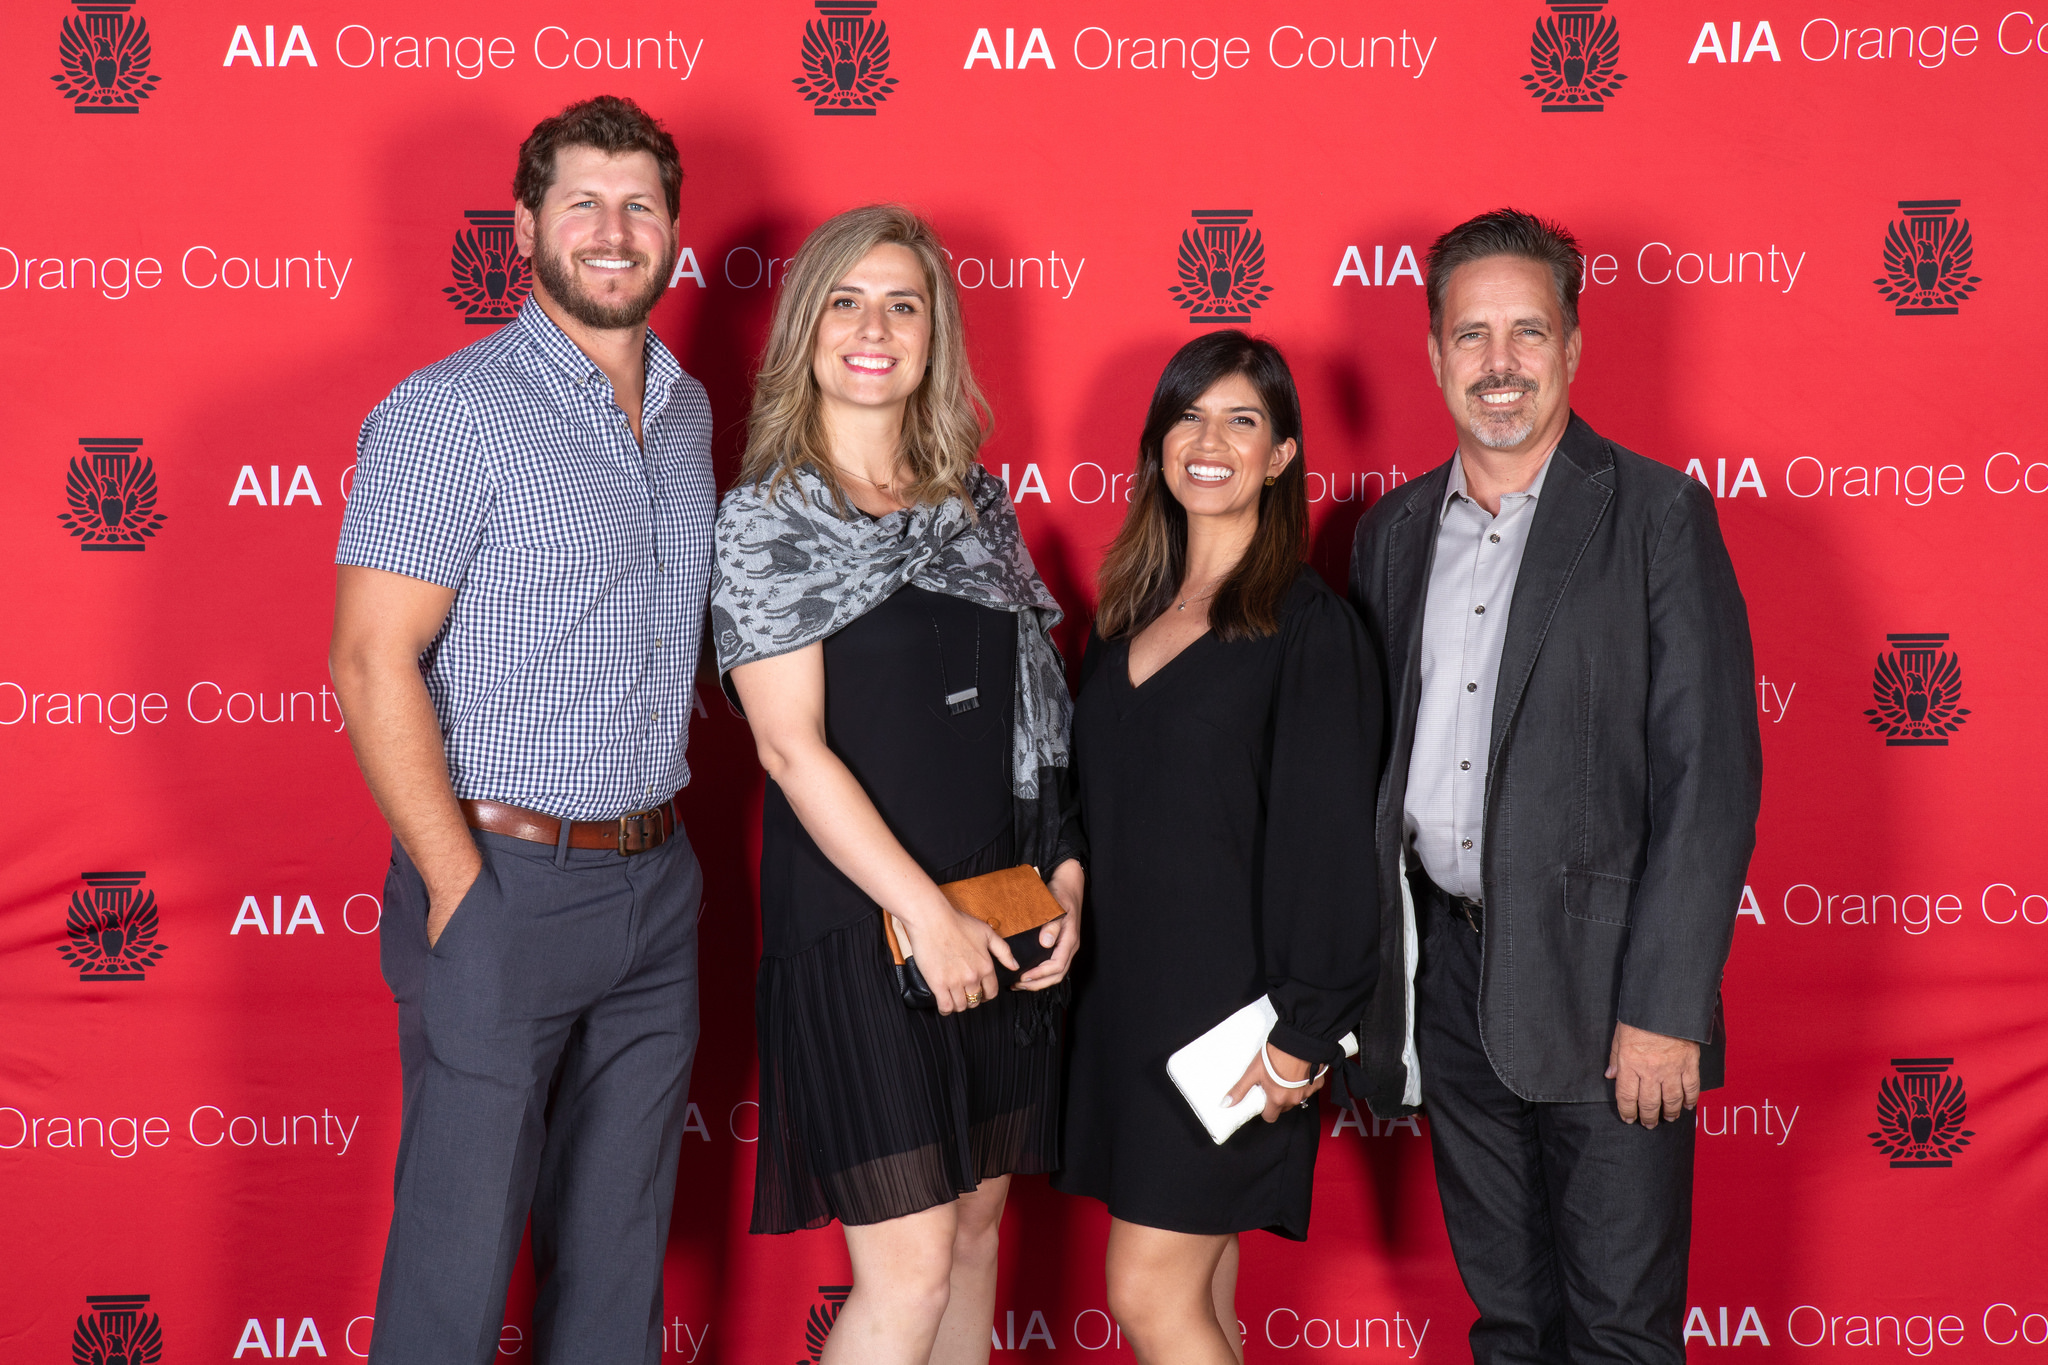 2018 AIAOC Awards_44839237032_066d3bb9eb_k.jpg